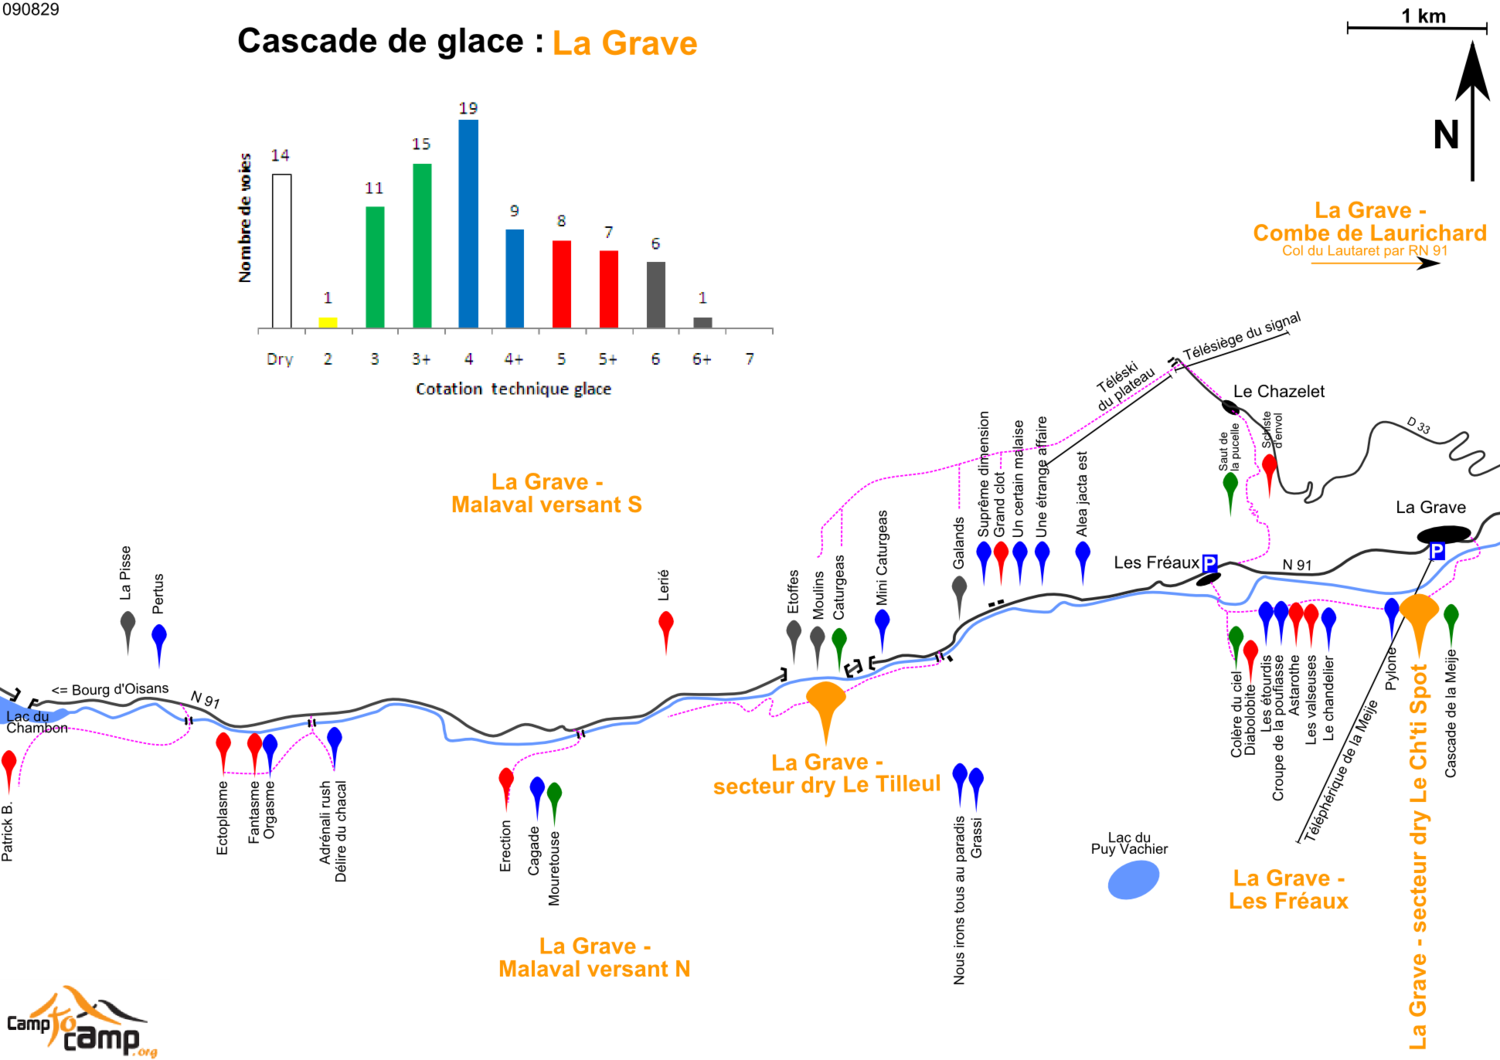 Ice climbing in La Grave - Map of routes and areas